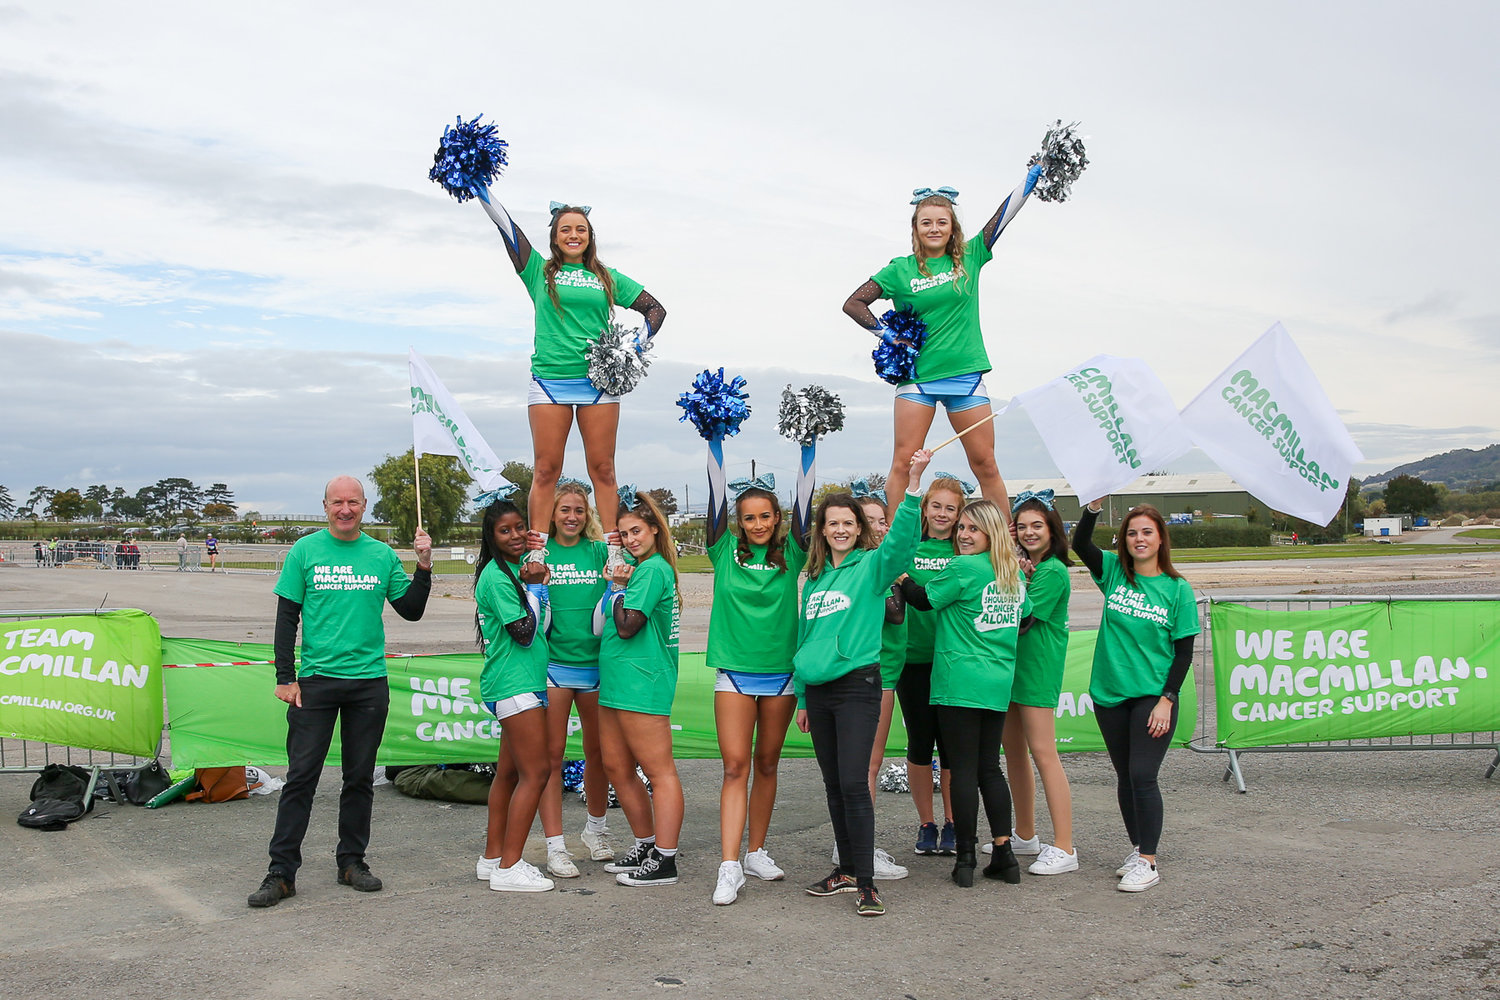 Macmillan-charity-marathon-run-cheltenham-racecourse-september-2018-natalia-smith-photography0360.jpg